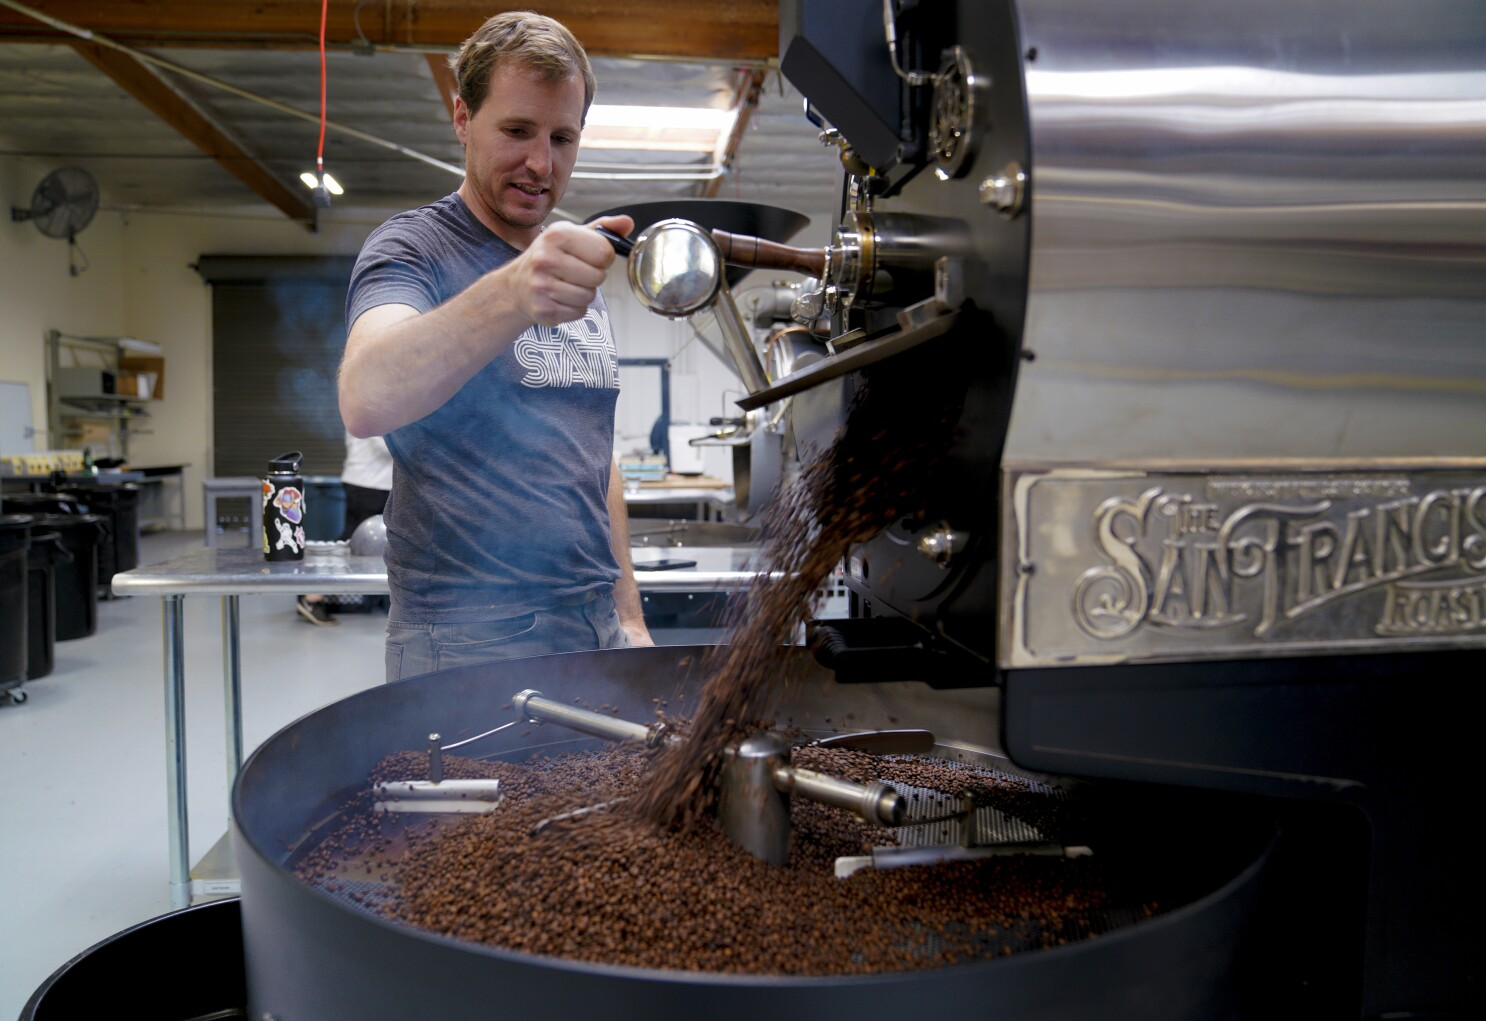 Carlsbad roaster borrows lessons from winemakers for its artisan coffees